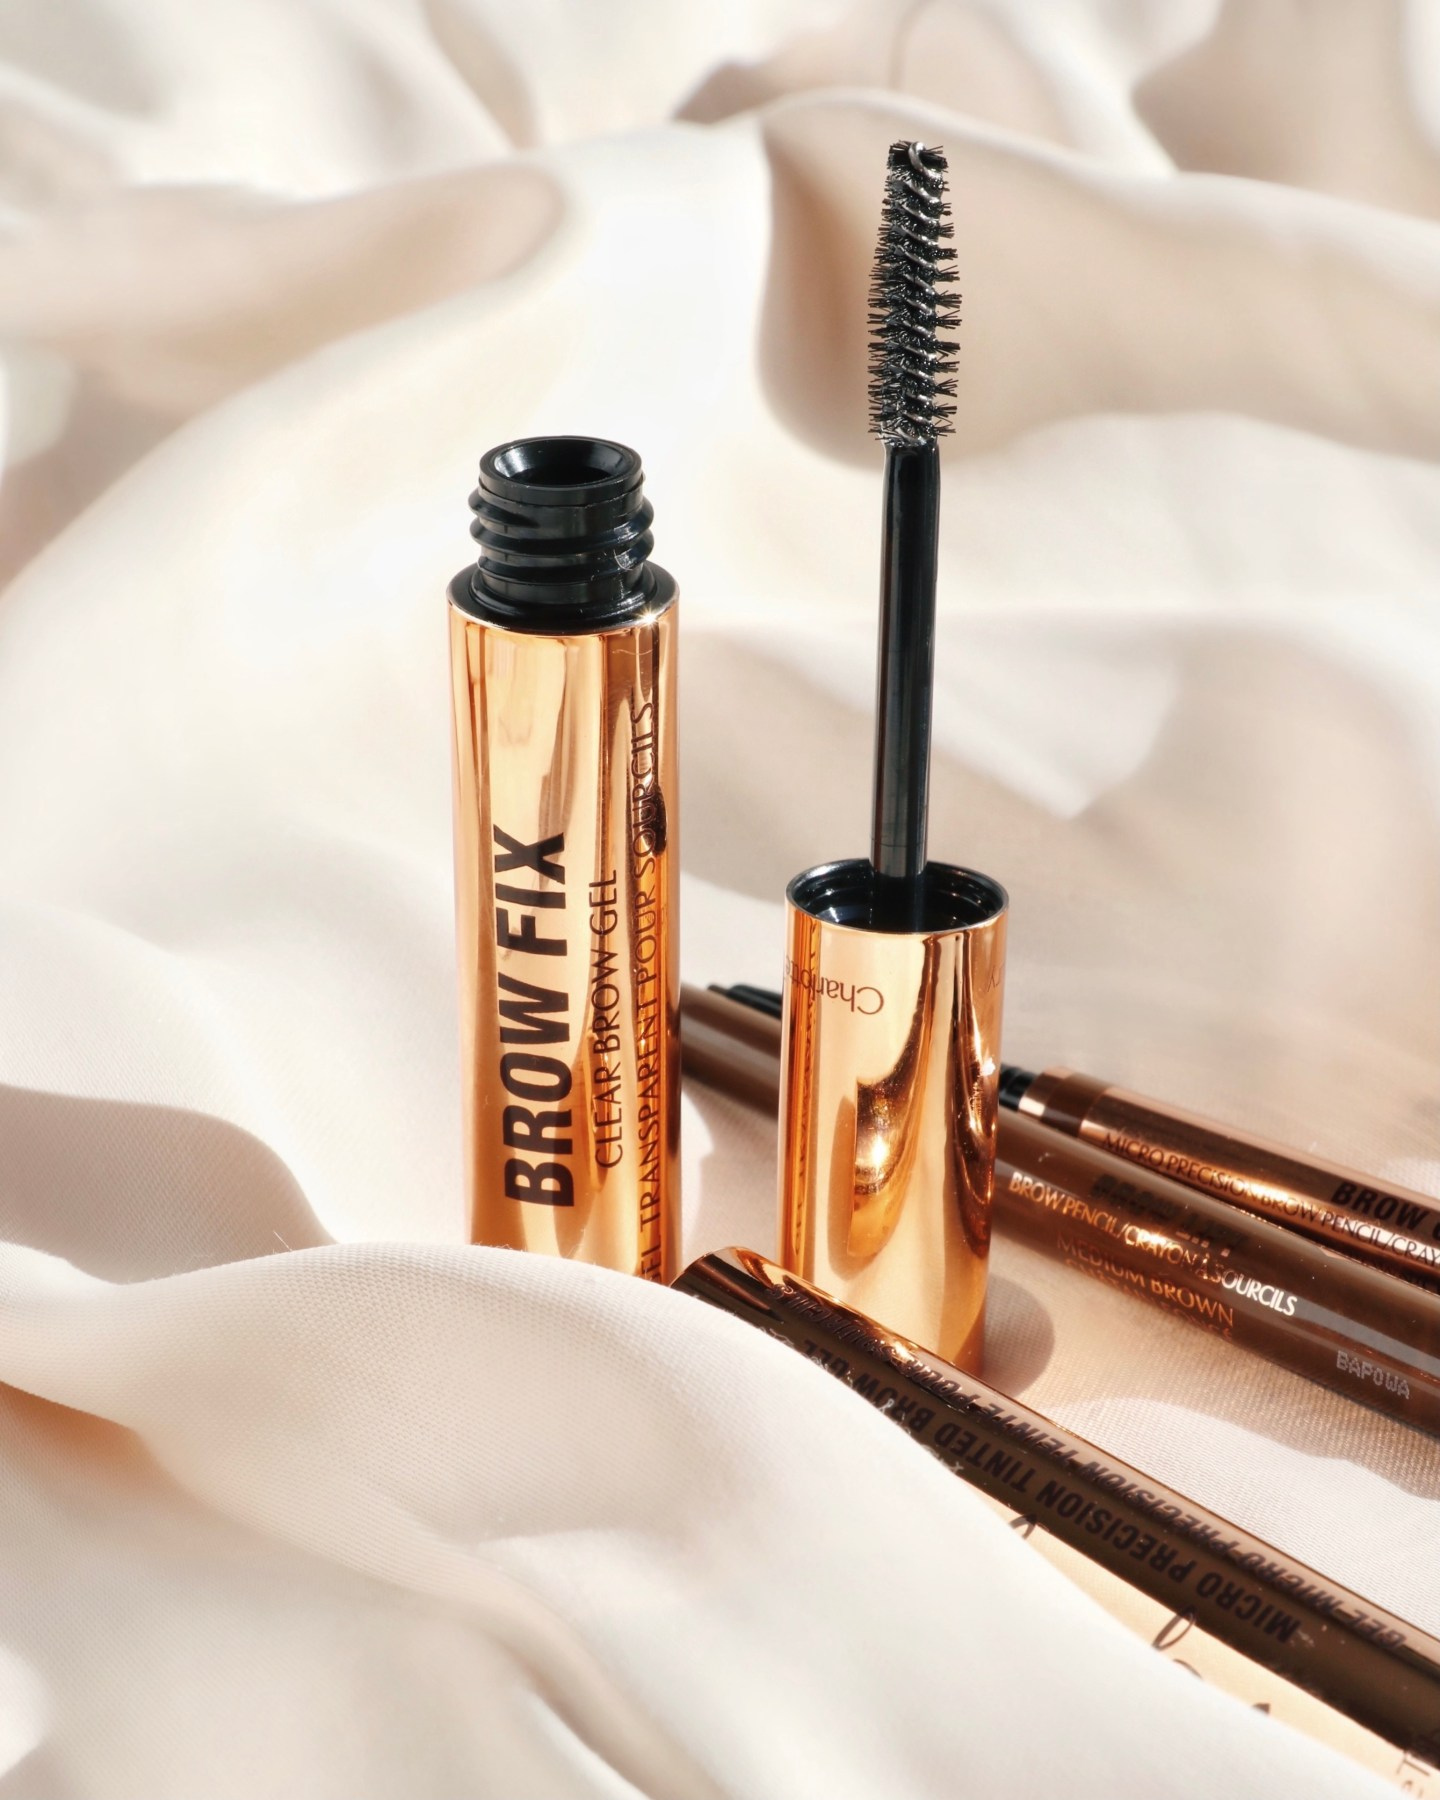 Charlotte Tilbury Supermodel Brows 3-Step System Review - Brow FIX